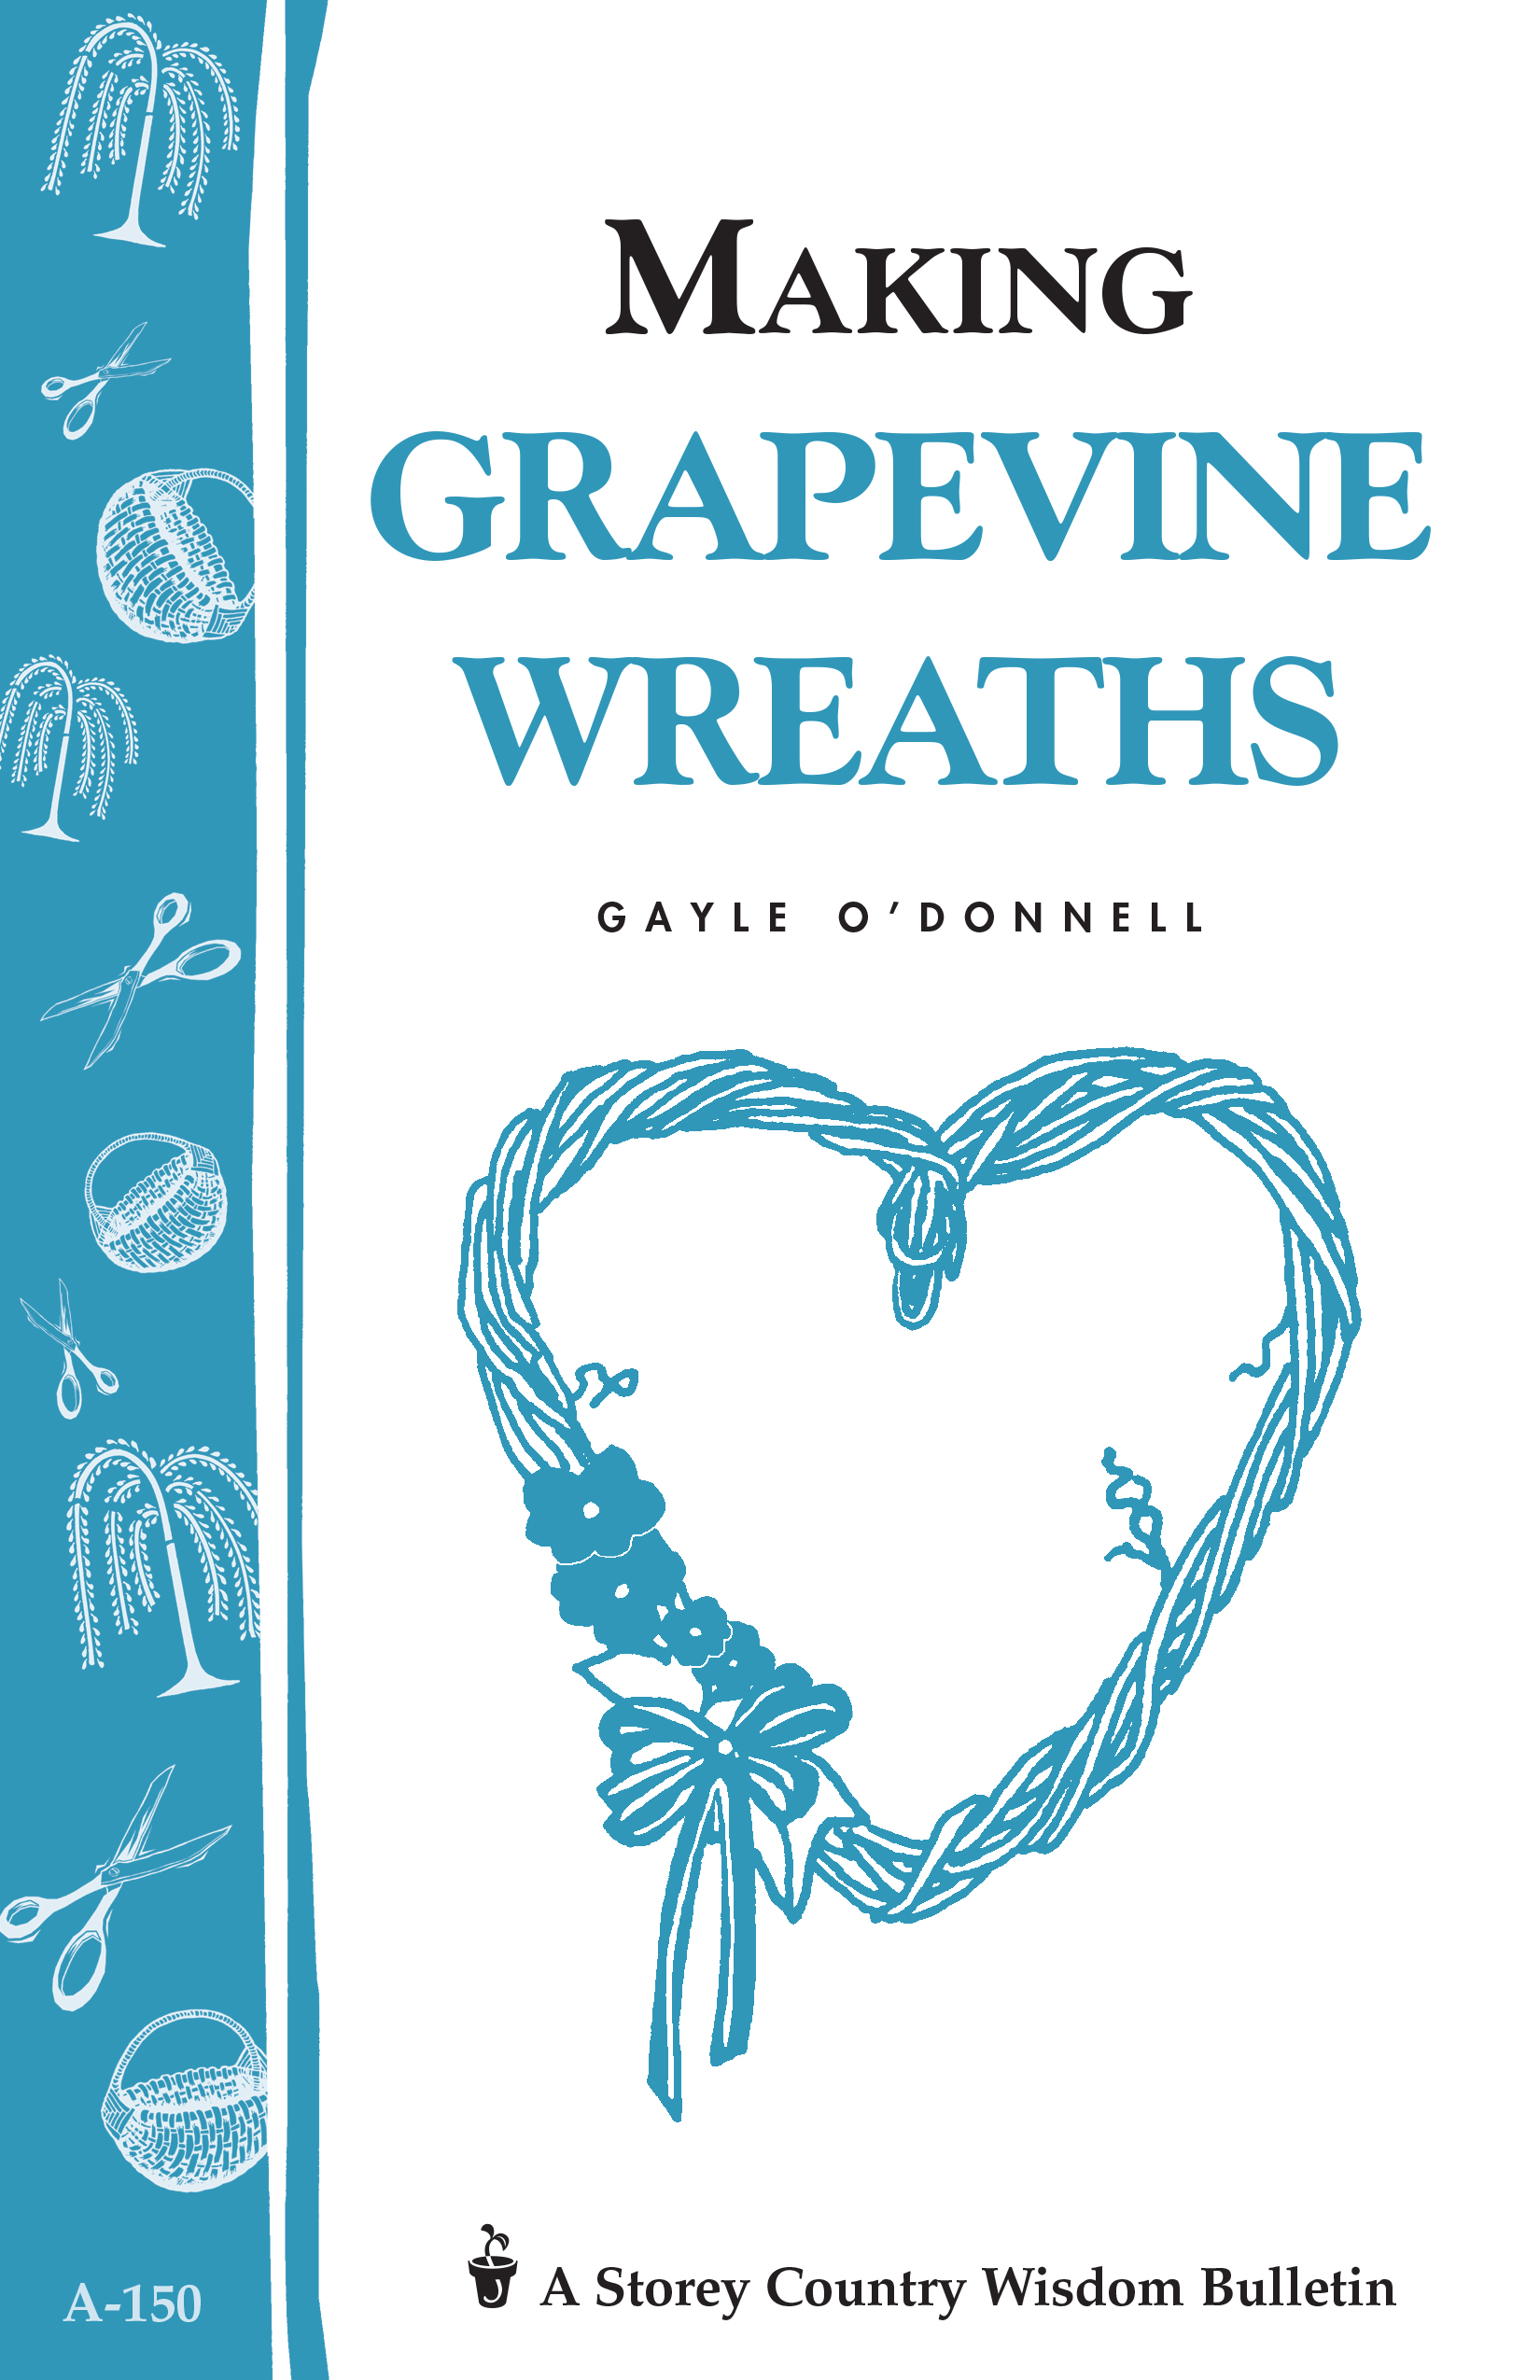 Making Grapevine Wreaths Storey's Country Wisdom Bulletin A-150 - Gayle O'Donnell